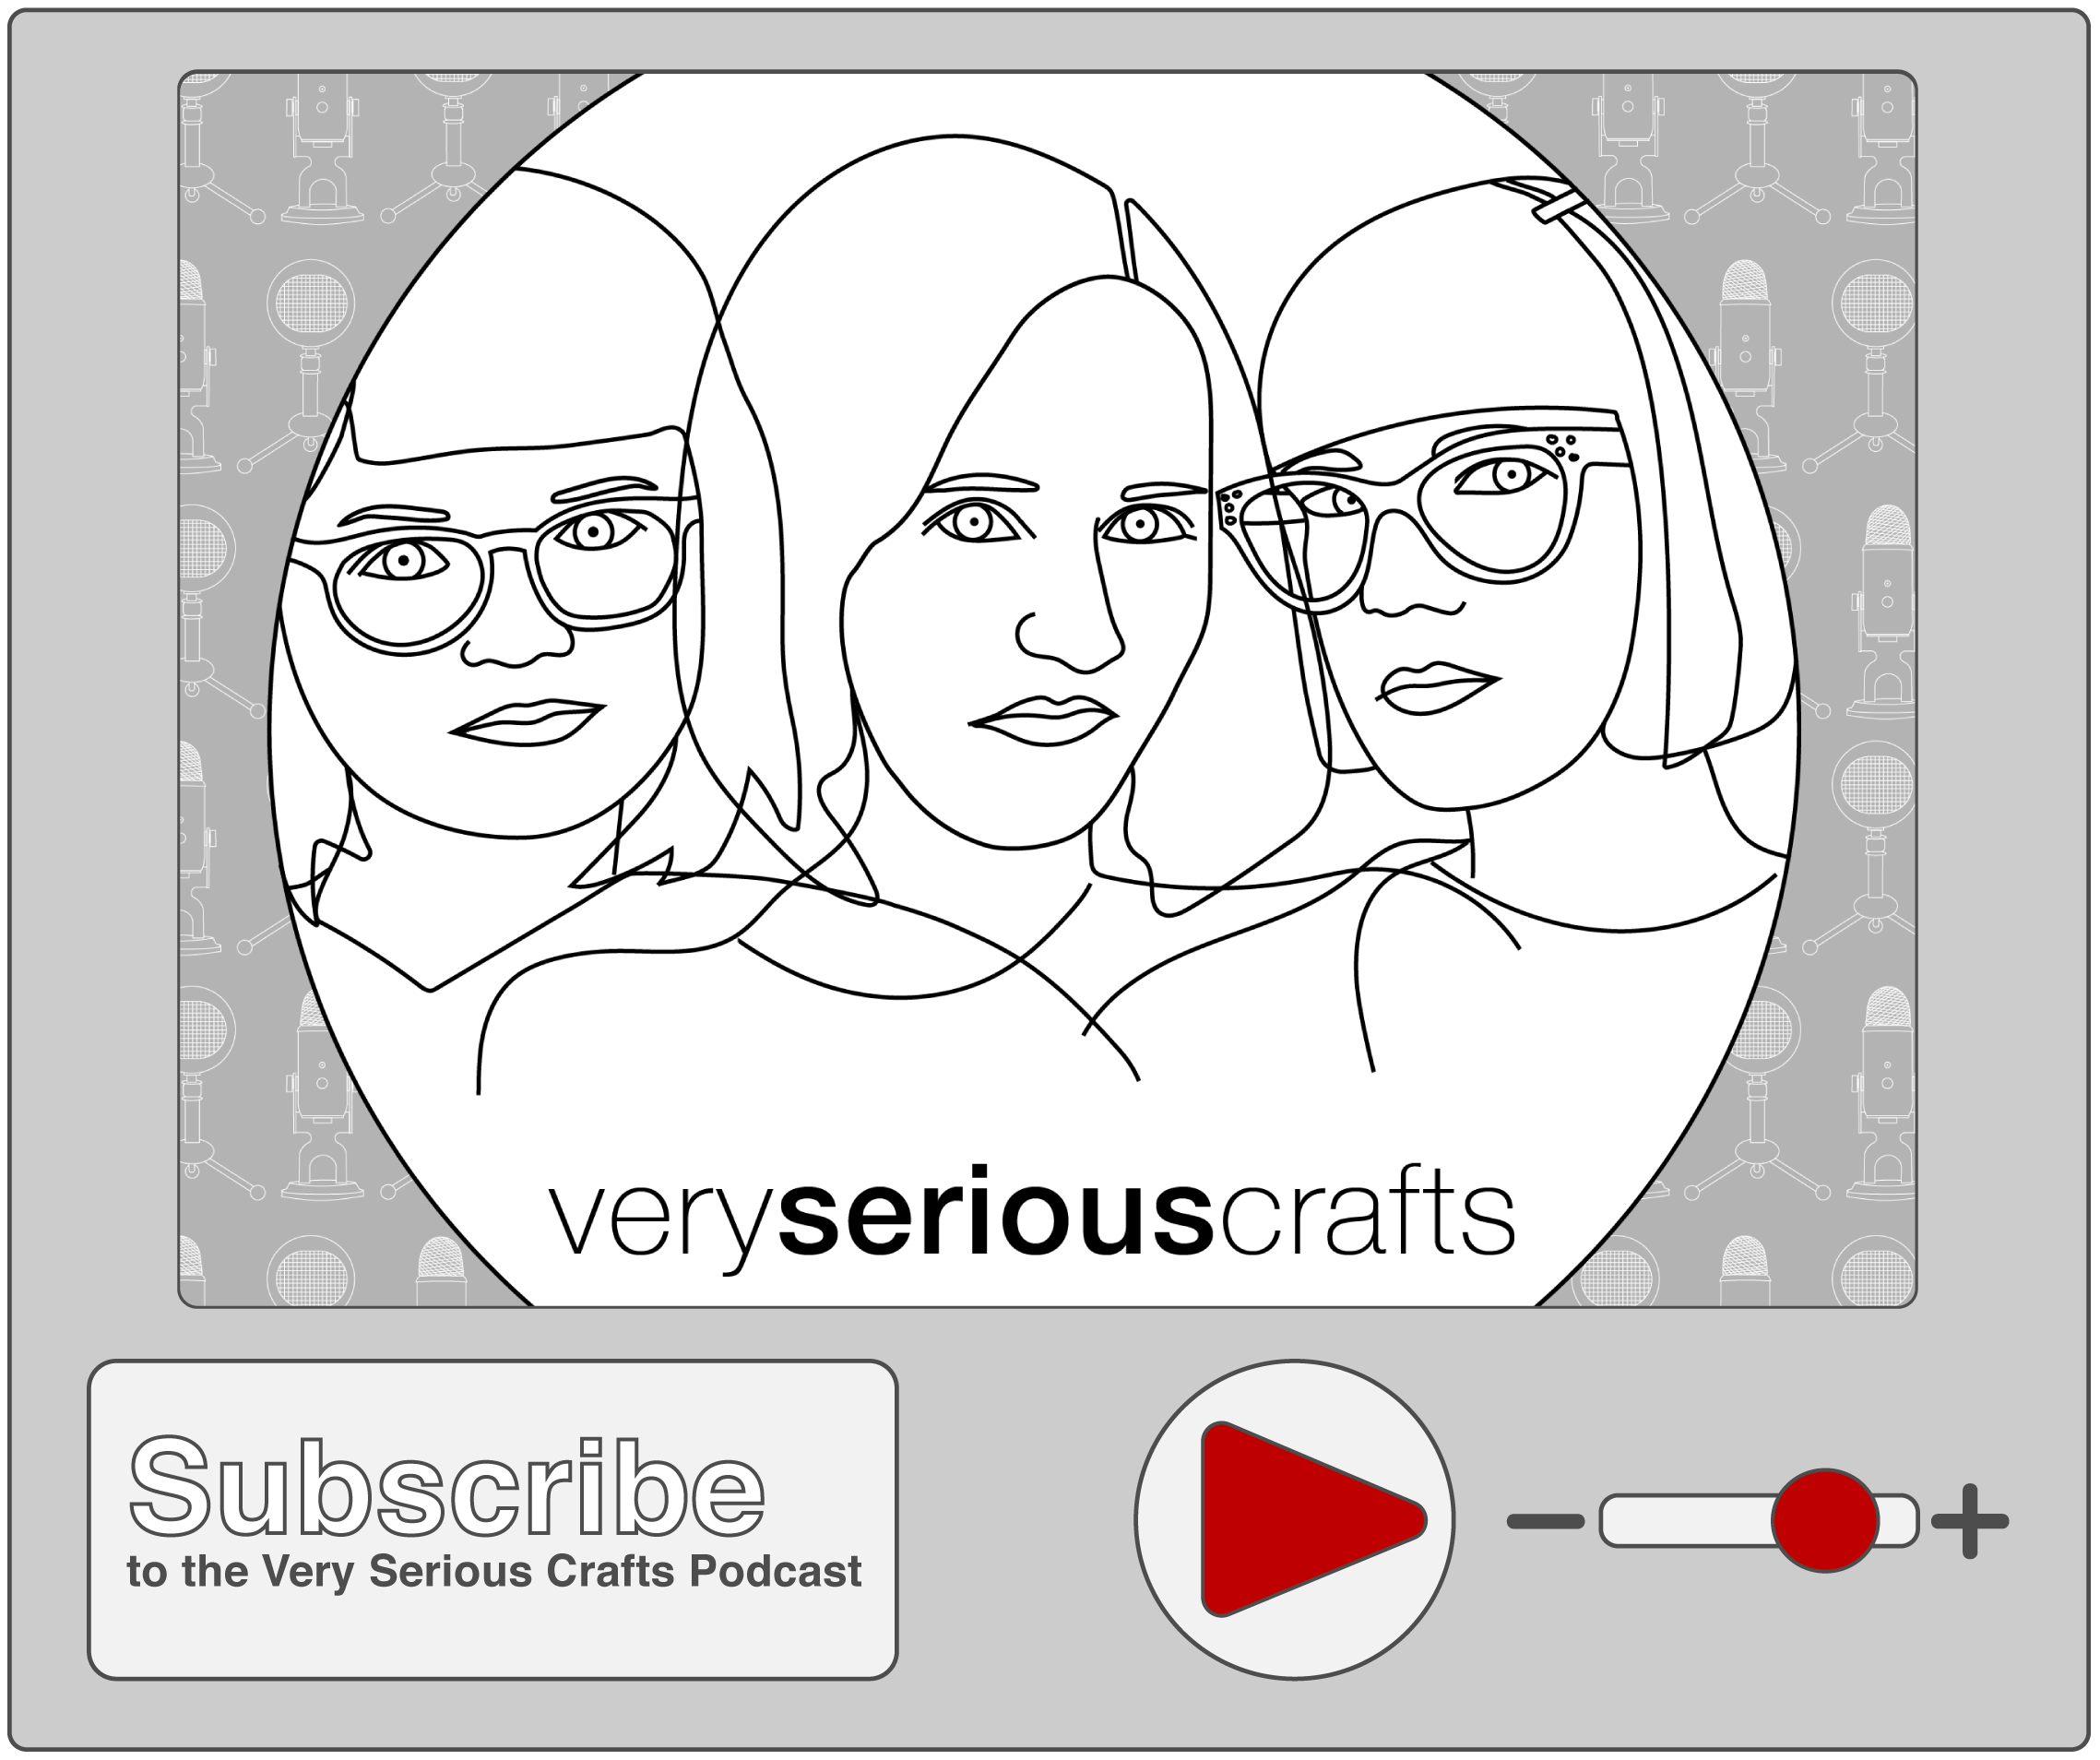 Very Serious Crafts - Subscribe Button